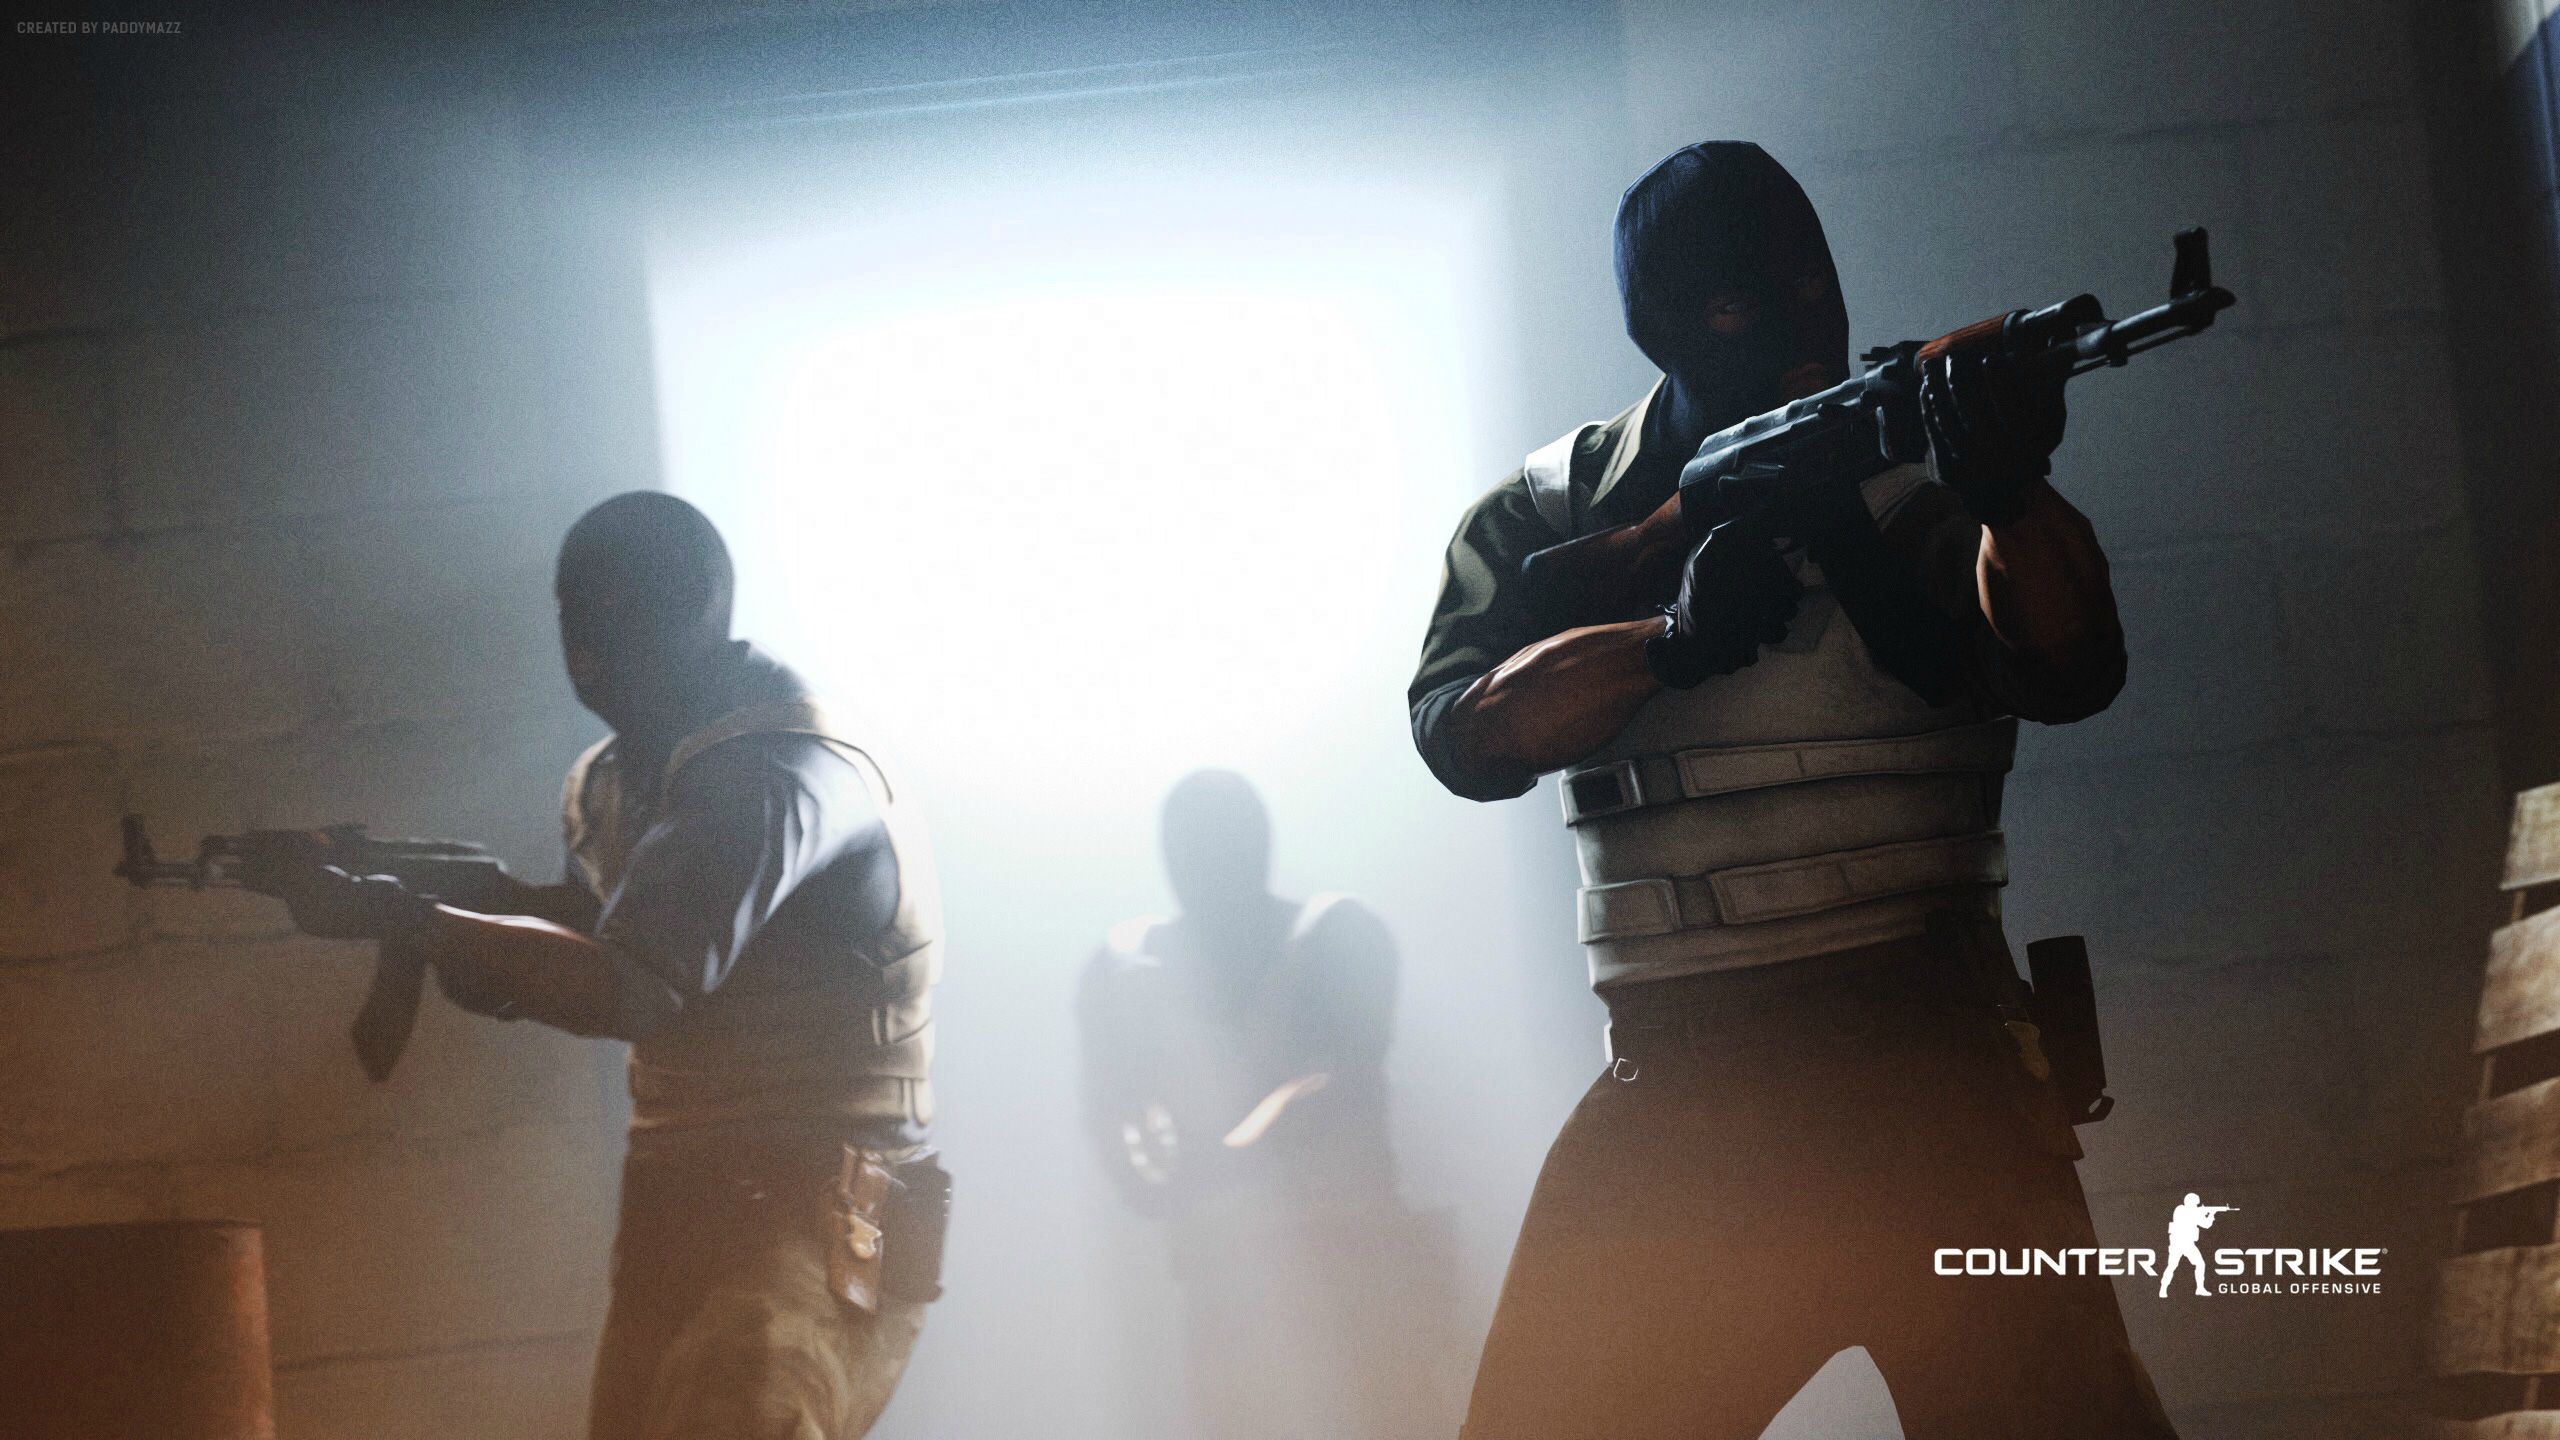 CS:GO Operation Hydra Adds Some Crazy Game Modes - mxdwn Games